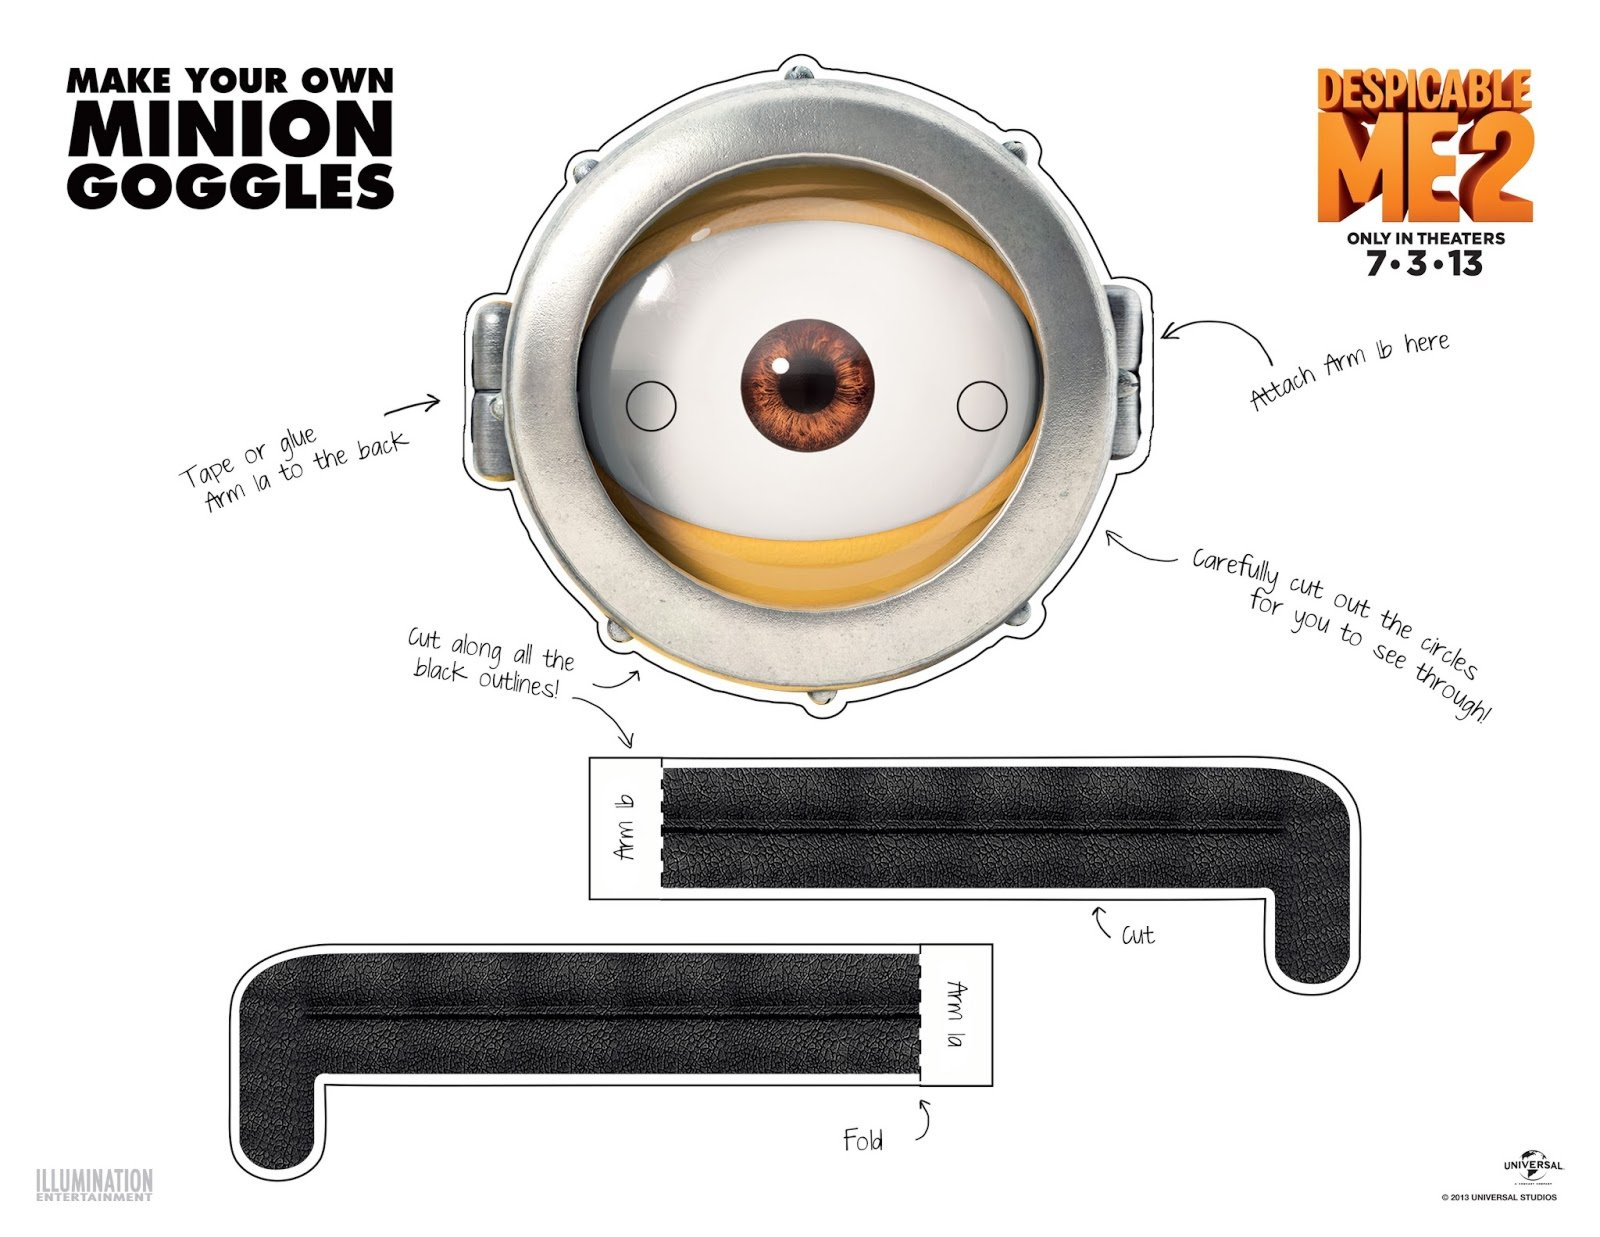 graphic about Minion Goggle Printable referred to as 5 Basic Strategies toward Generate Minion Goggles or Gles